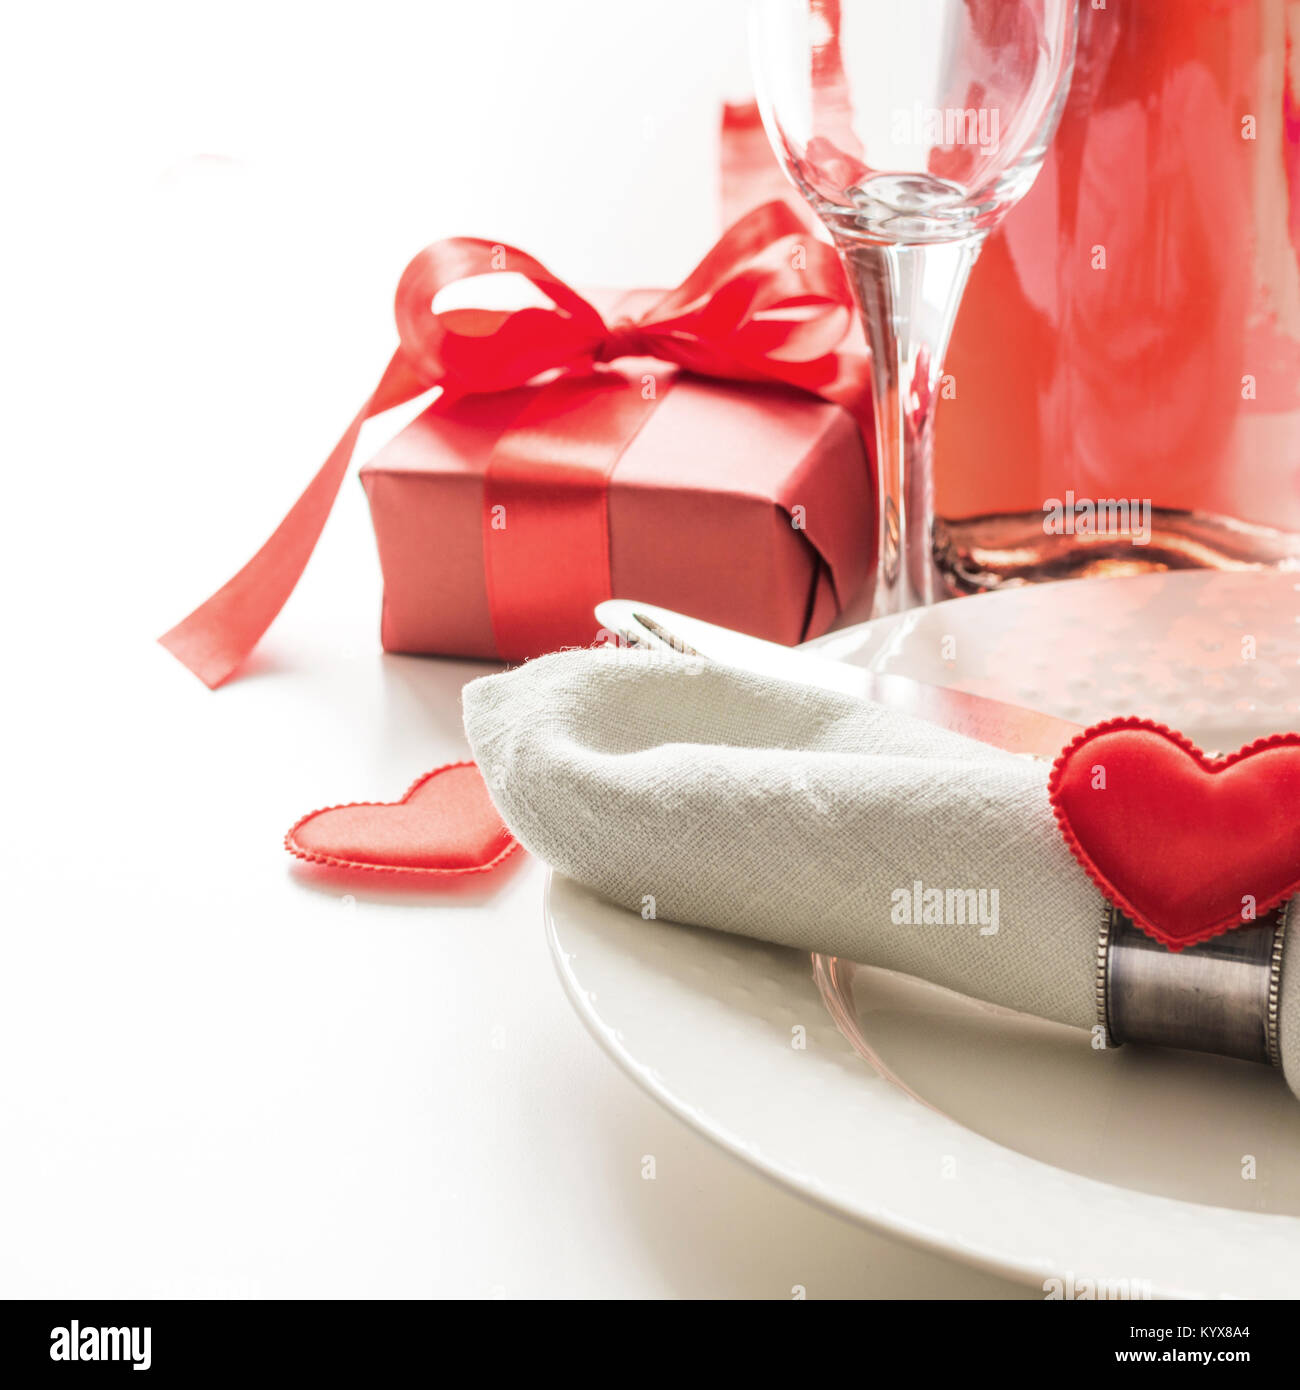 Valentines Day Dinner With Table Place Setting With Red Gift A